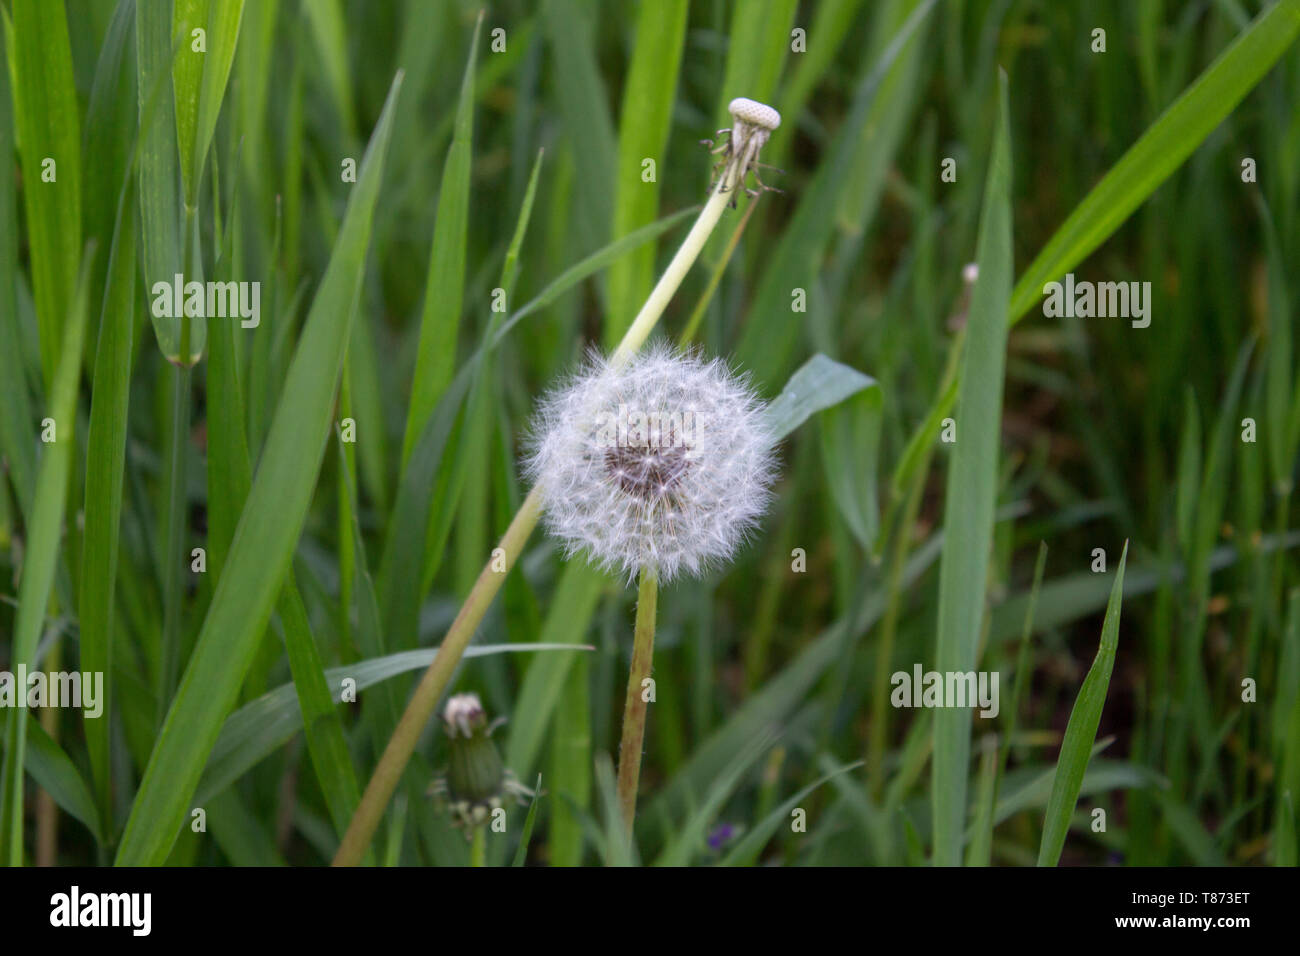 Dandelion is fallen and in all its glory - Stock Image